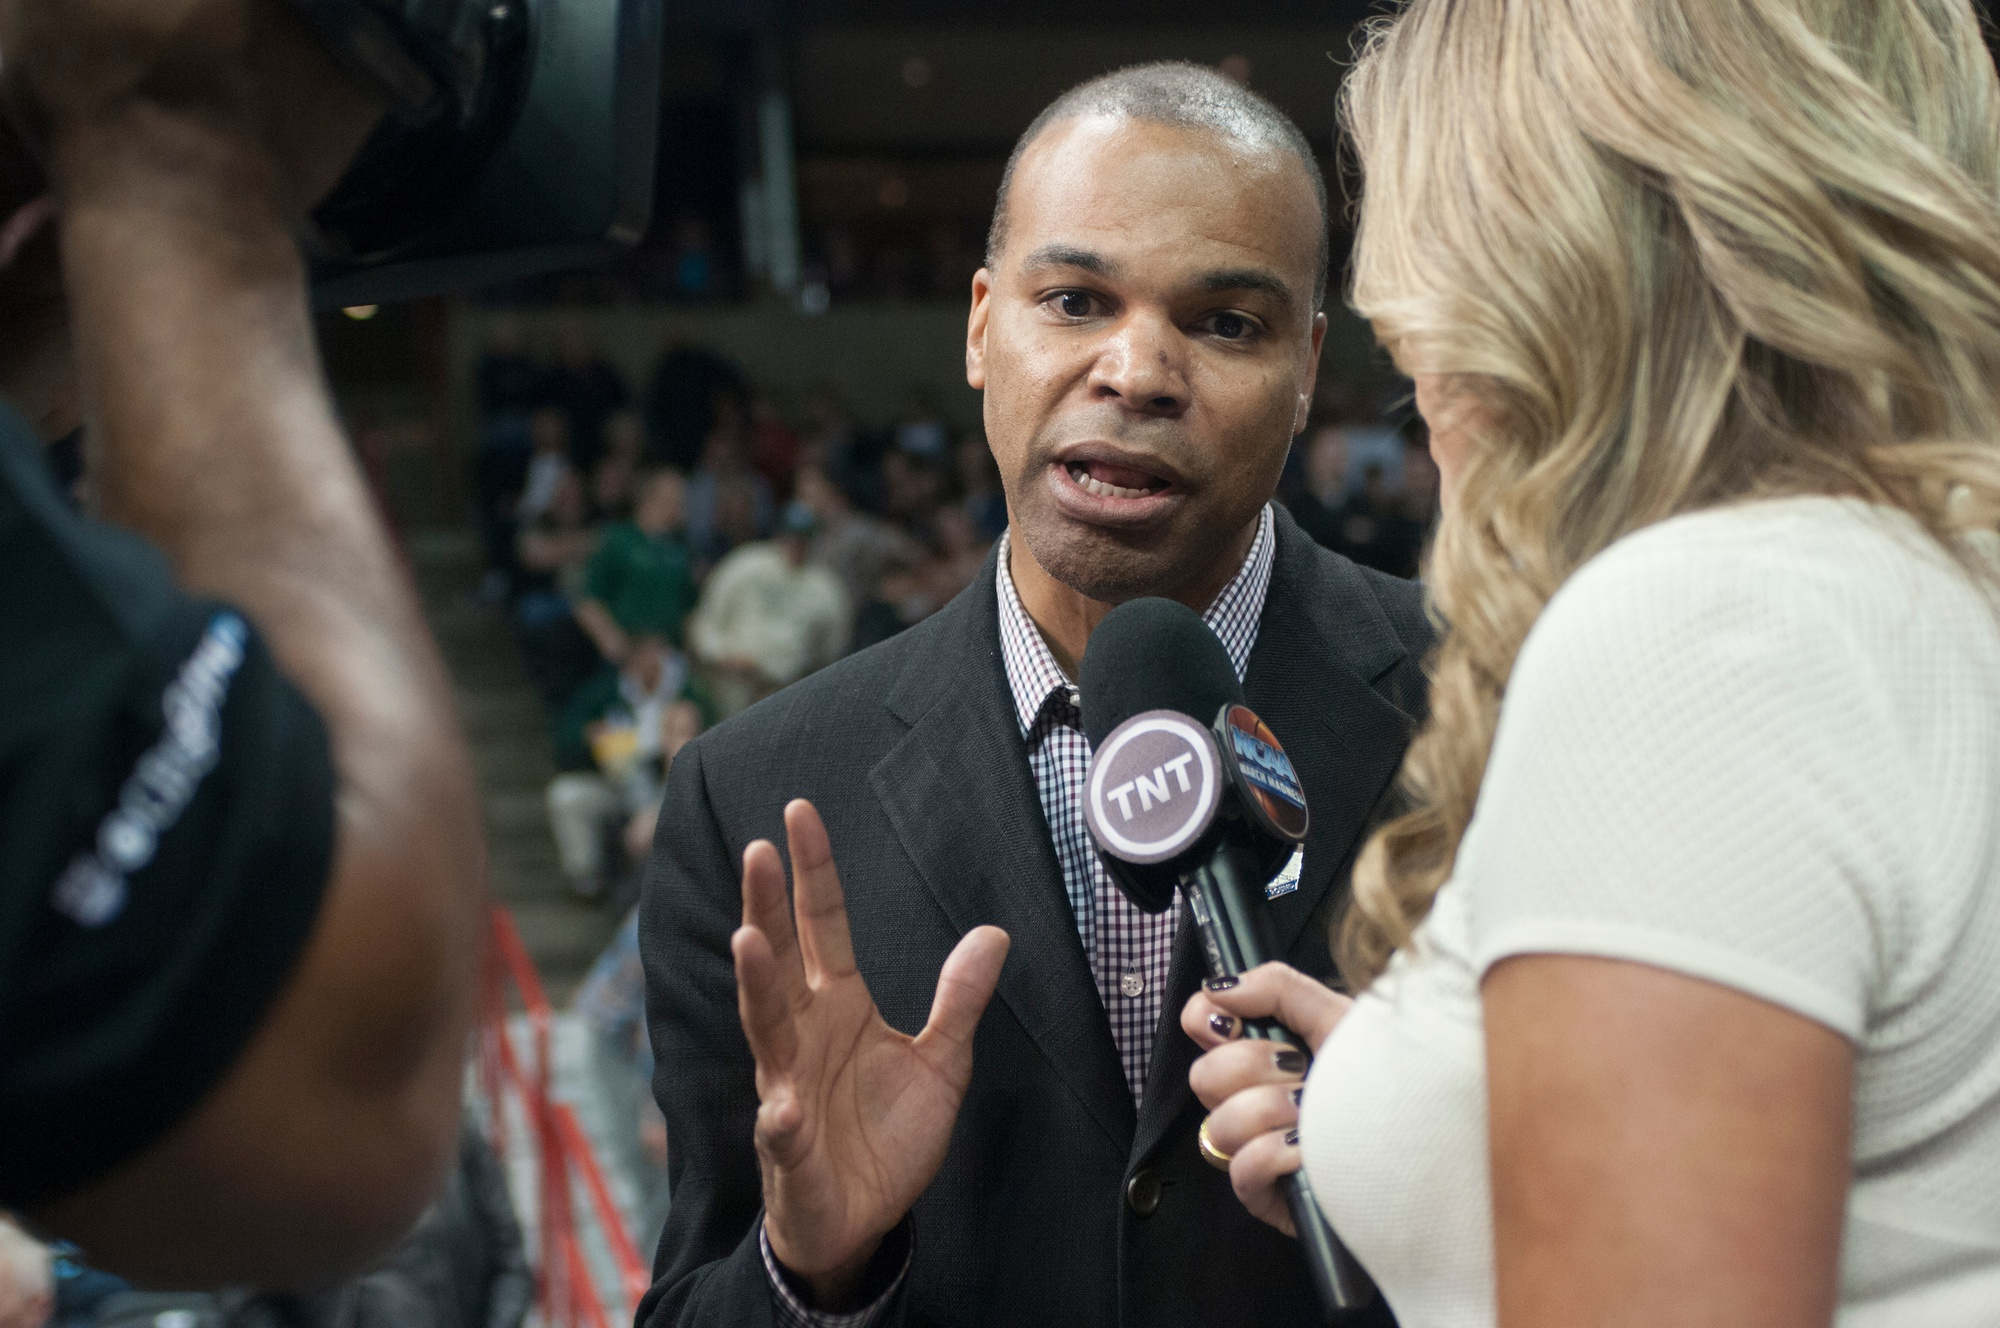 Coach Amaker speaks with TNT following Harvard's loss to Michigan State in the 2014 NCAA tournament.